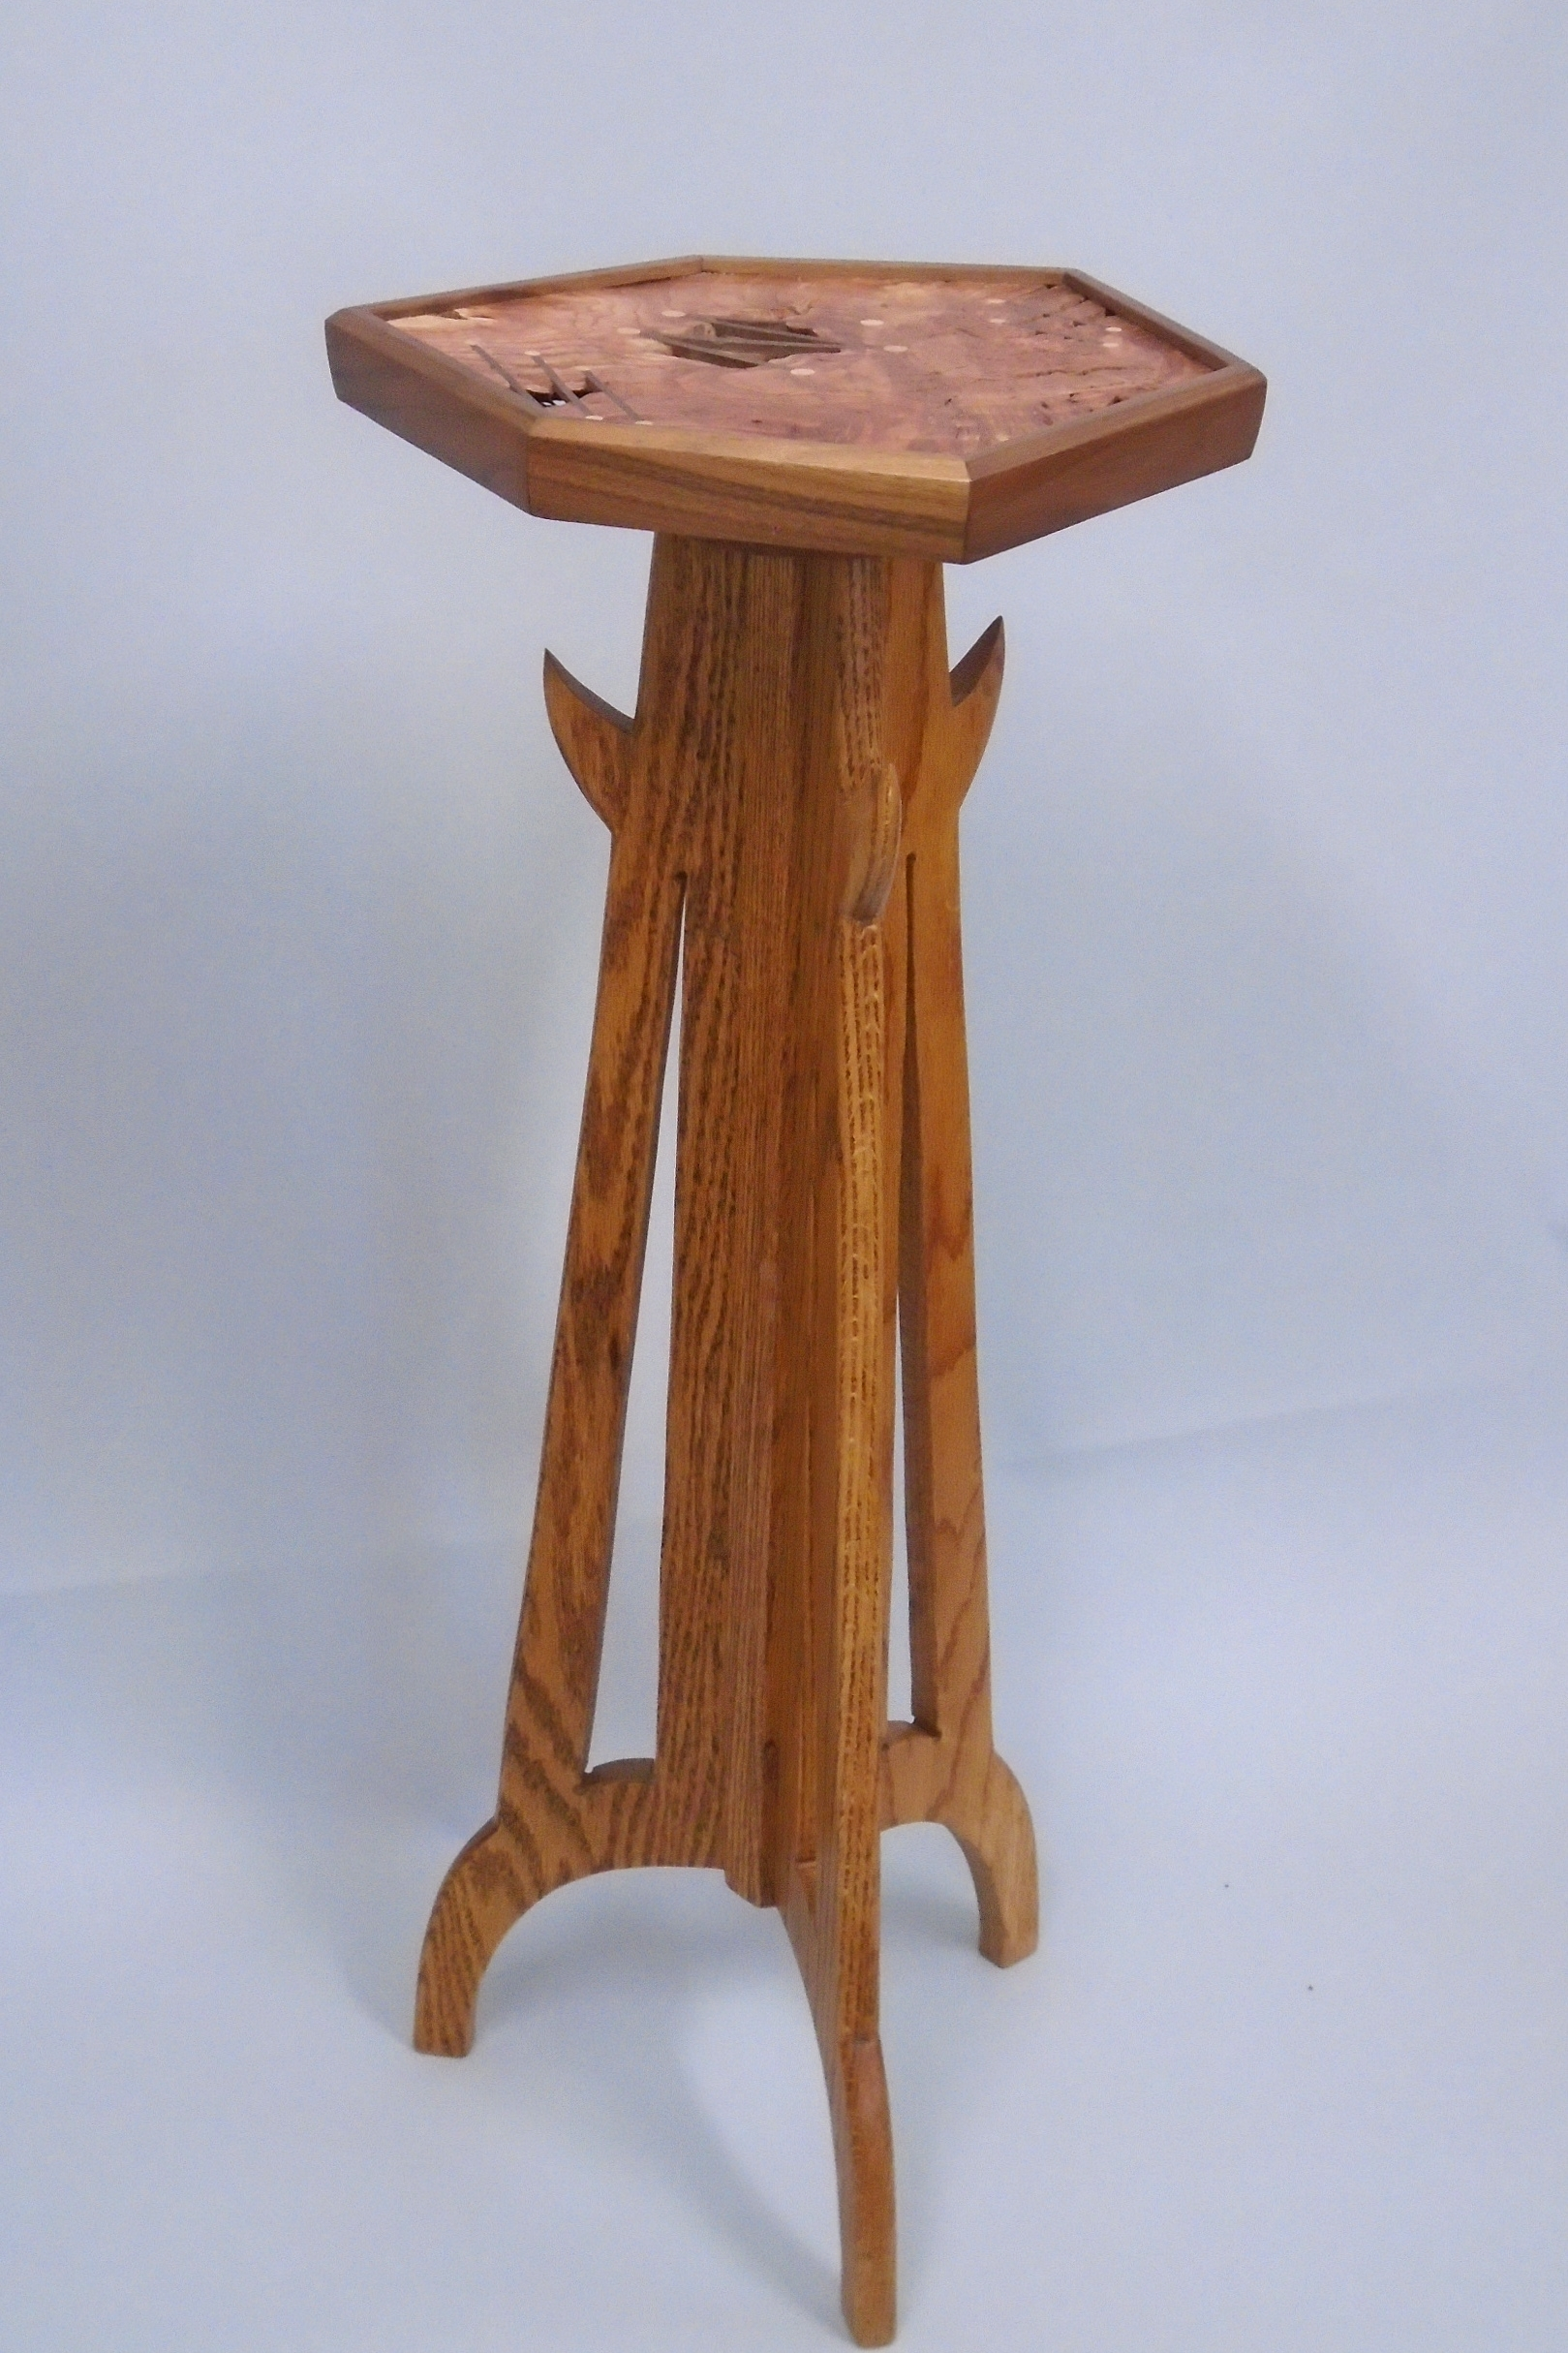 Pedestal with inlay top, 2017